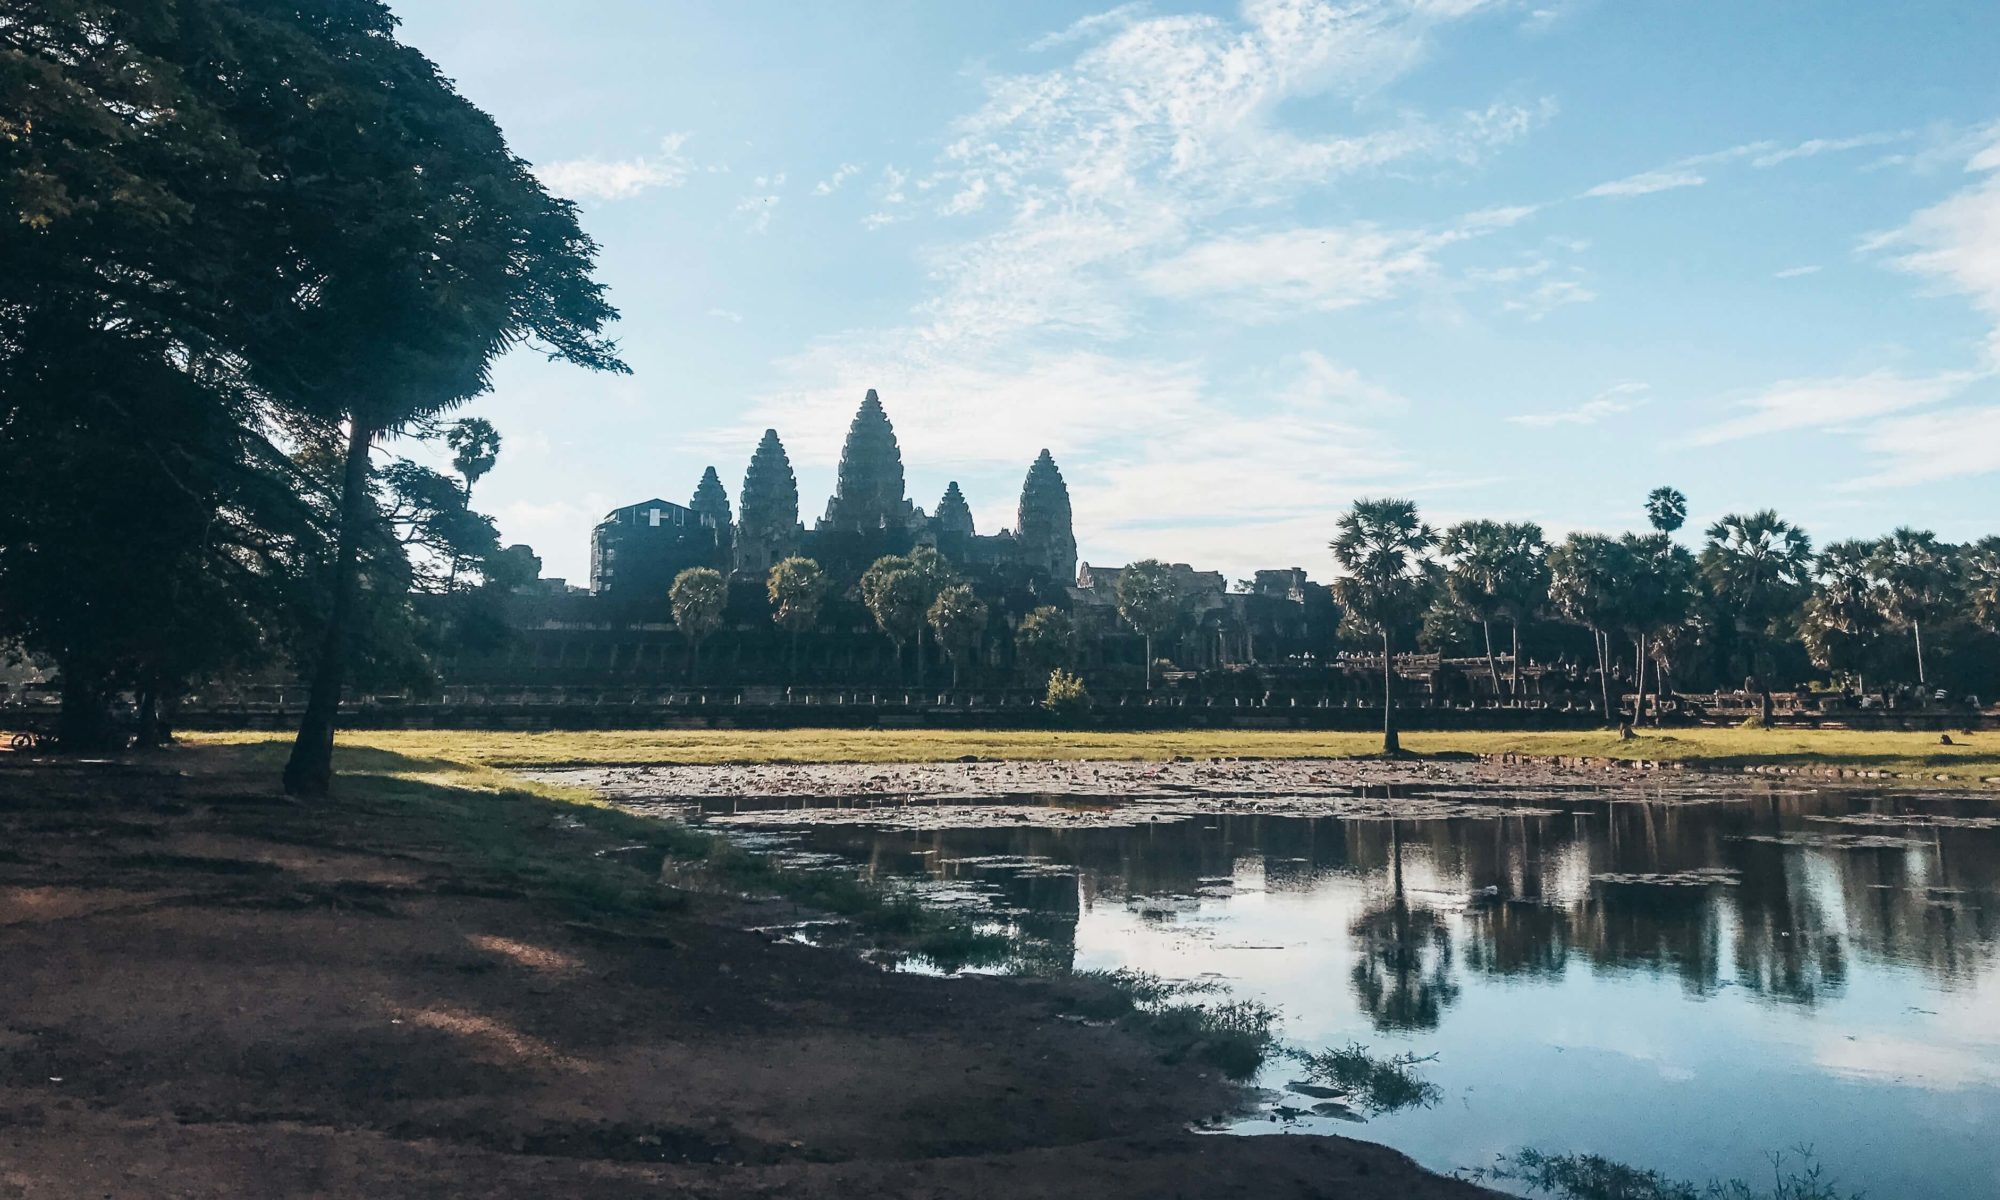 Sunrise at Angkor Wat an amazing thing to do in Cambodia